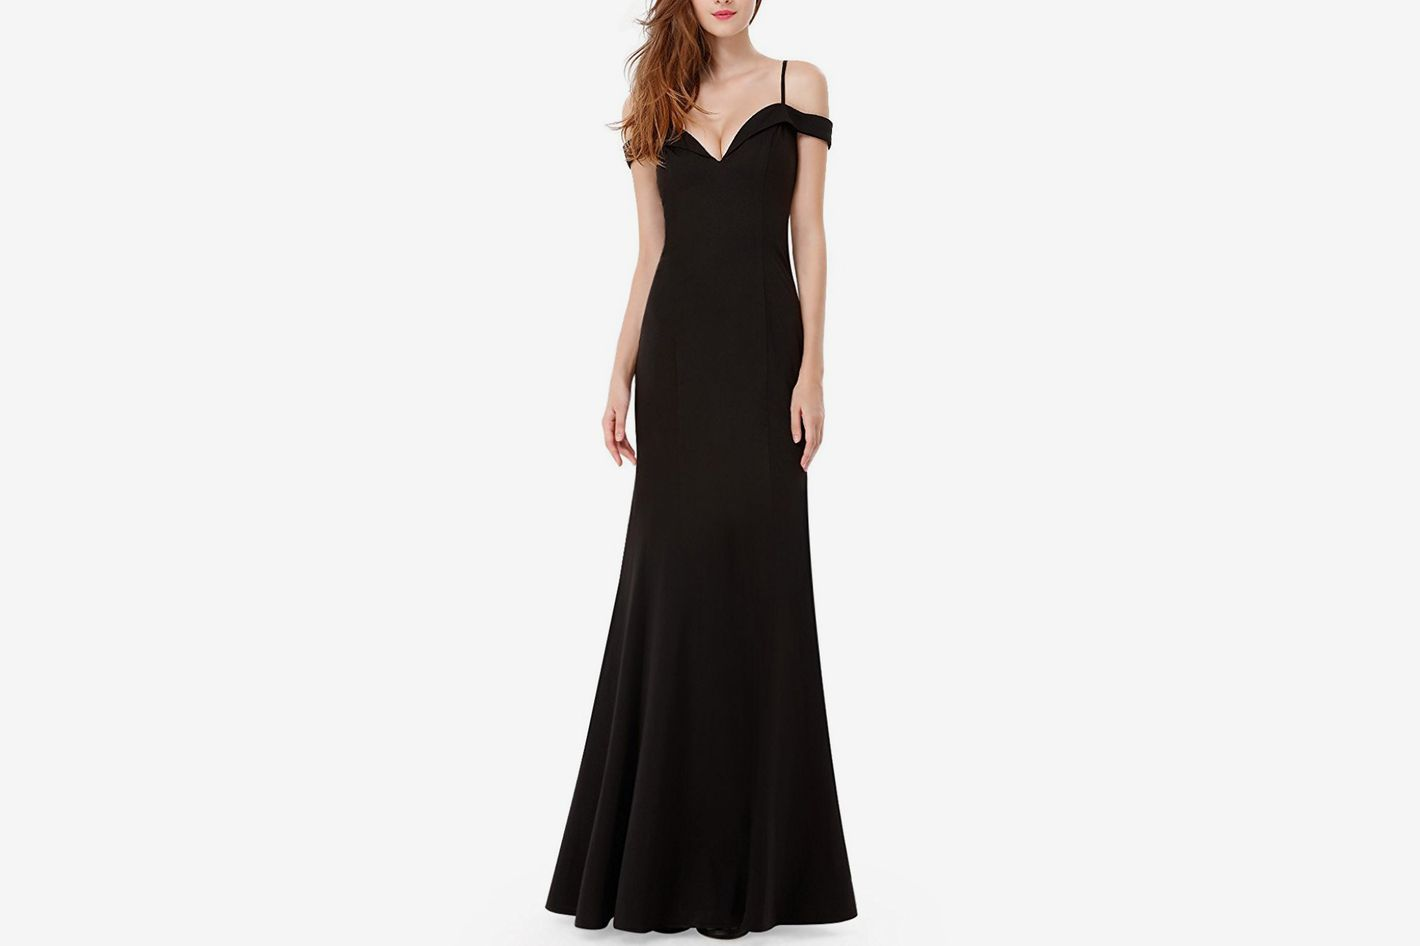 17 Black Dresses You Can Wear to a Wedding